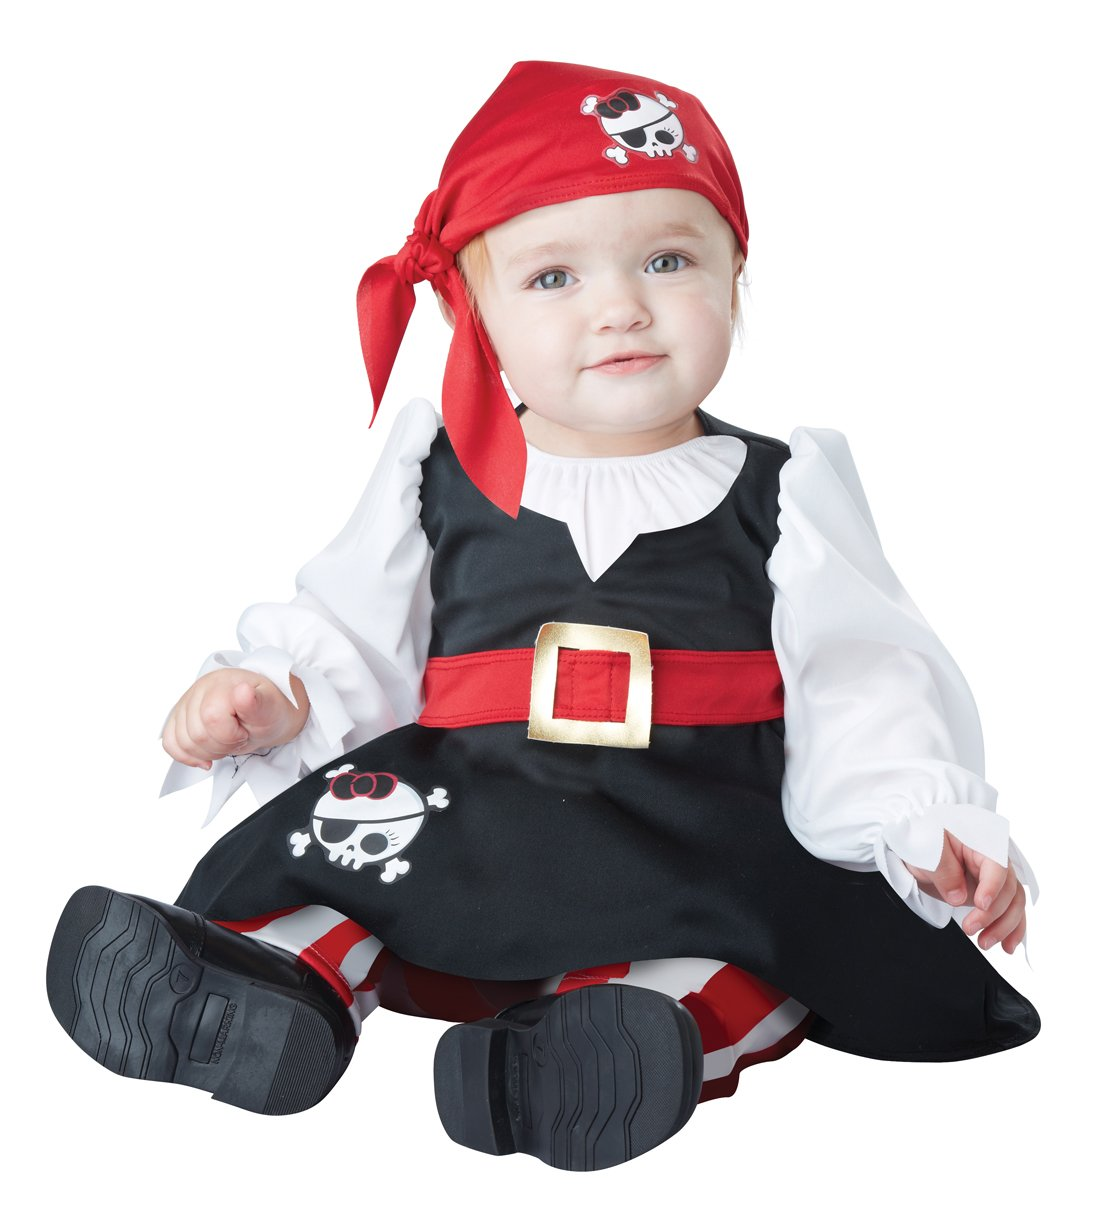 Buccaneer Petite Pirate Baby Infant Costume Size: 12-18 Months #10028